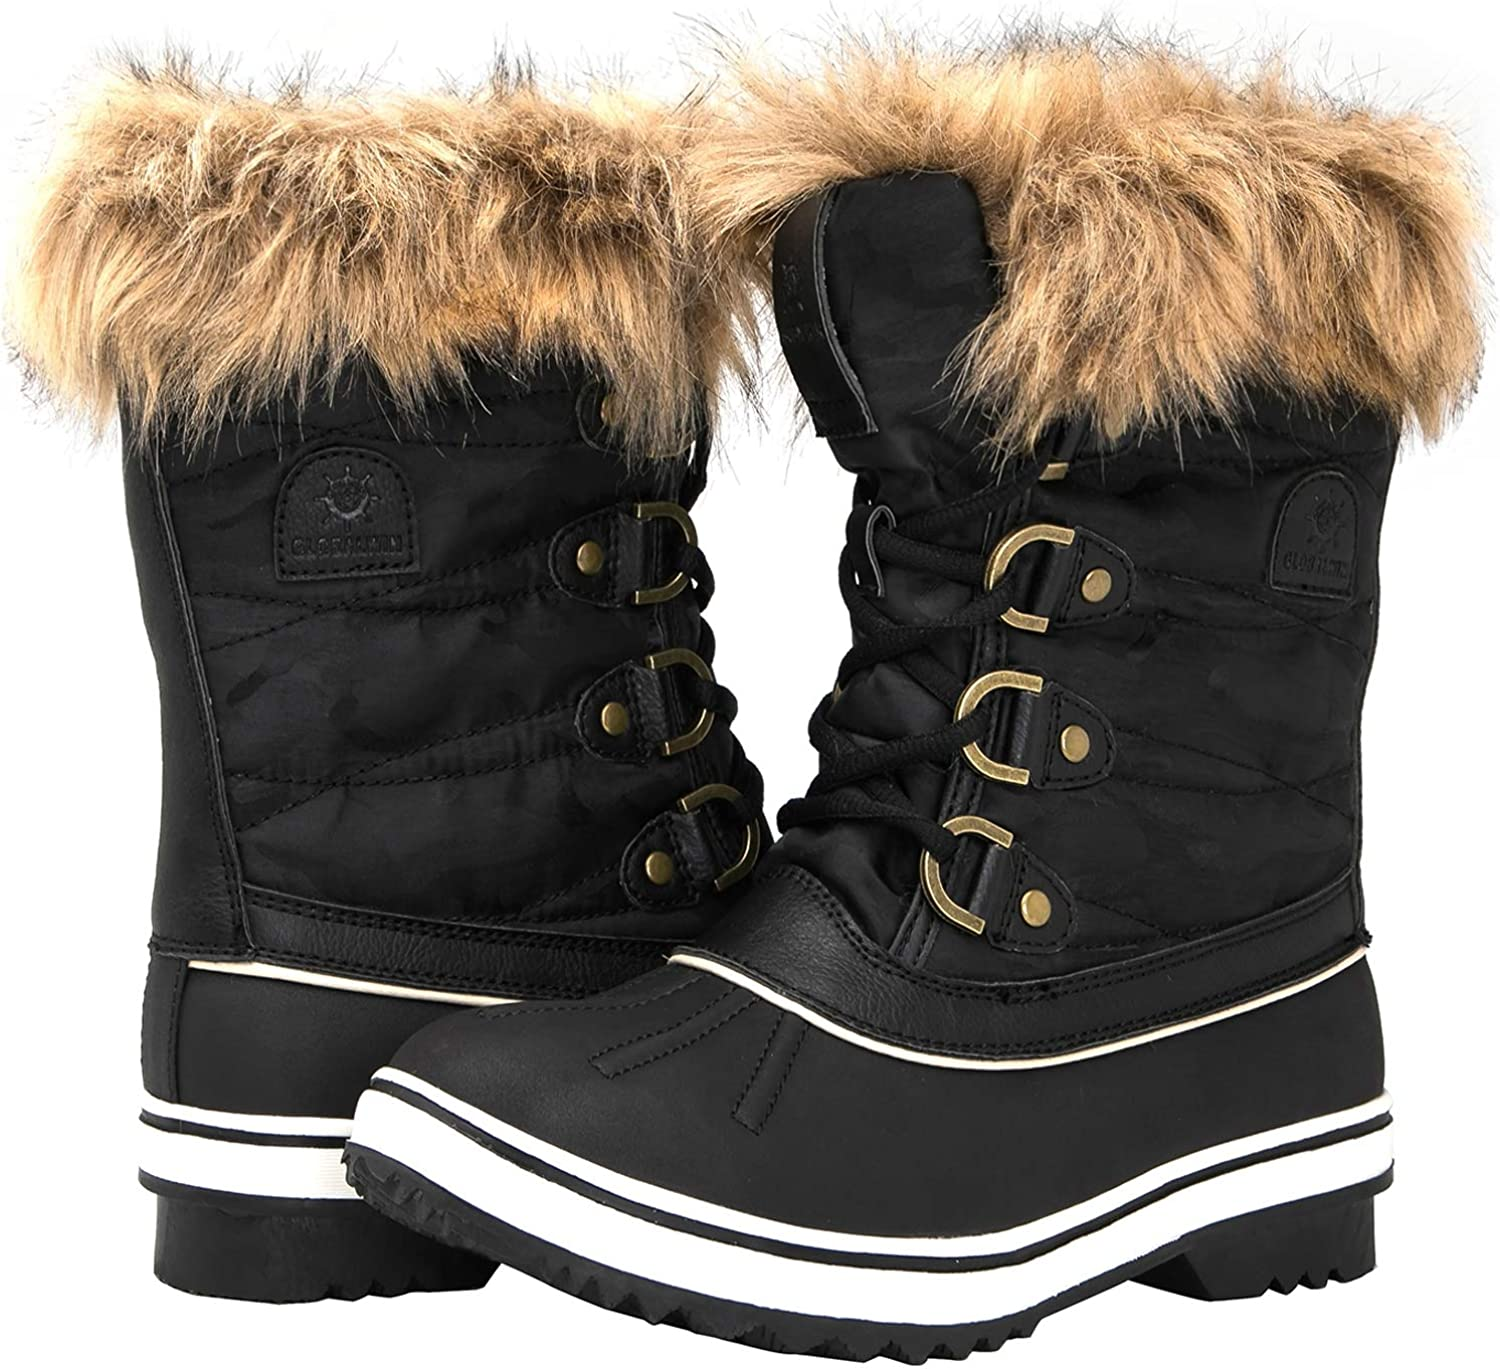 GLOBALWIN Women's 1837 Boots Snow Purchase Winter shopping